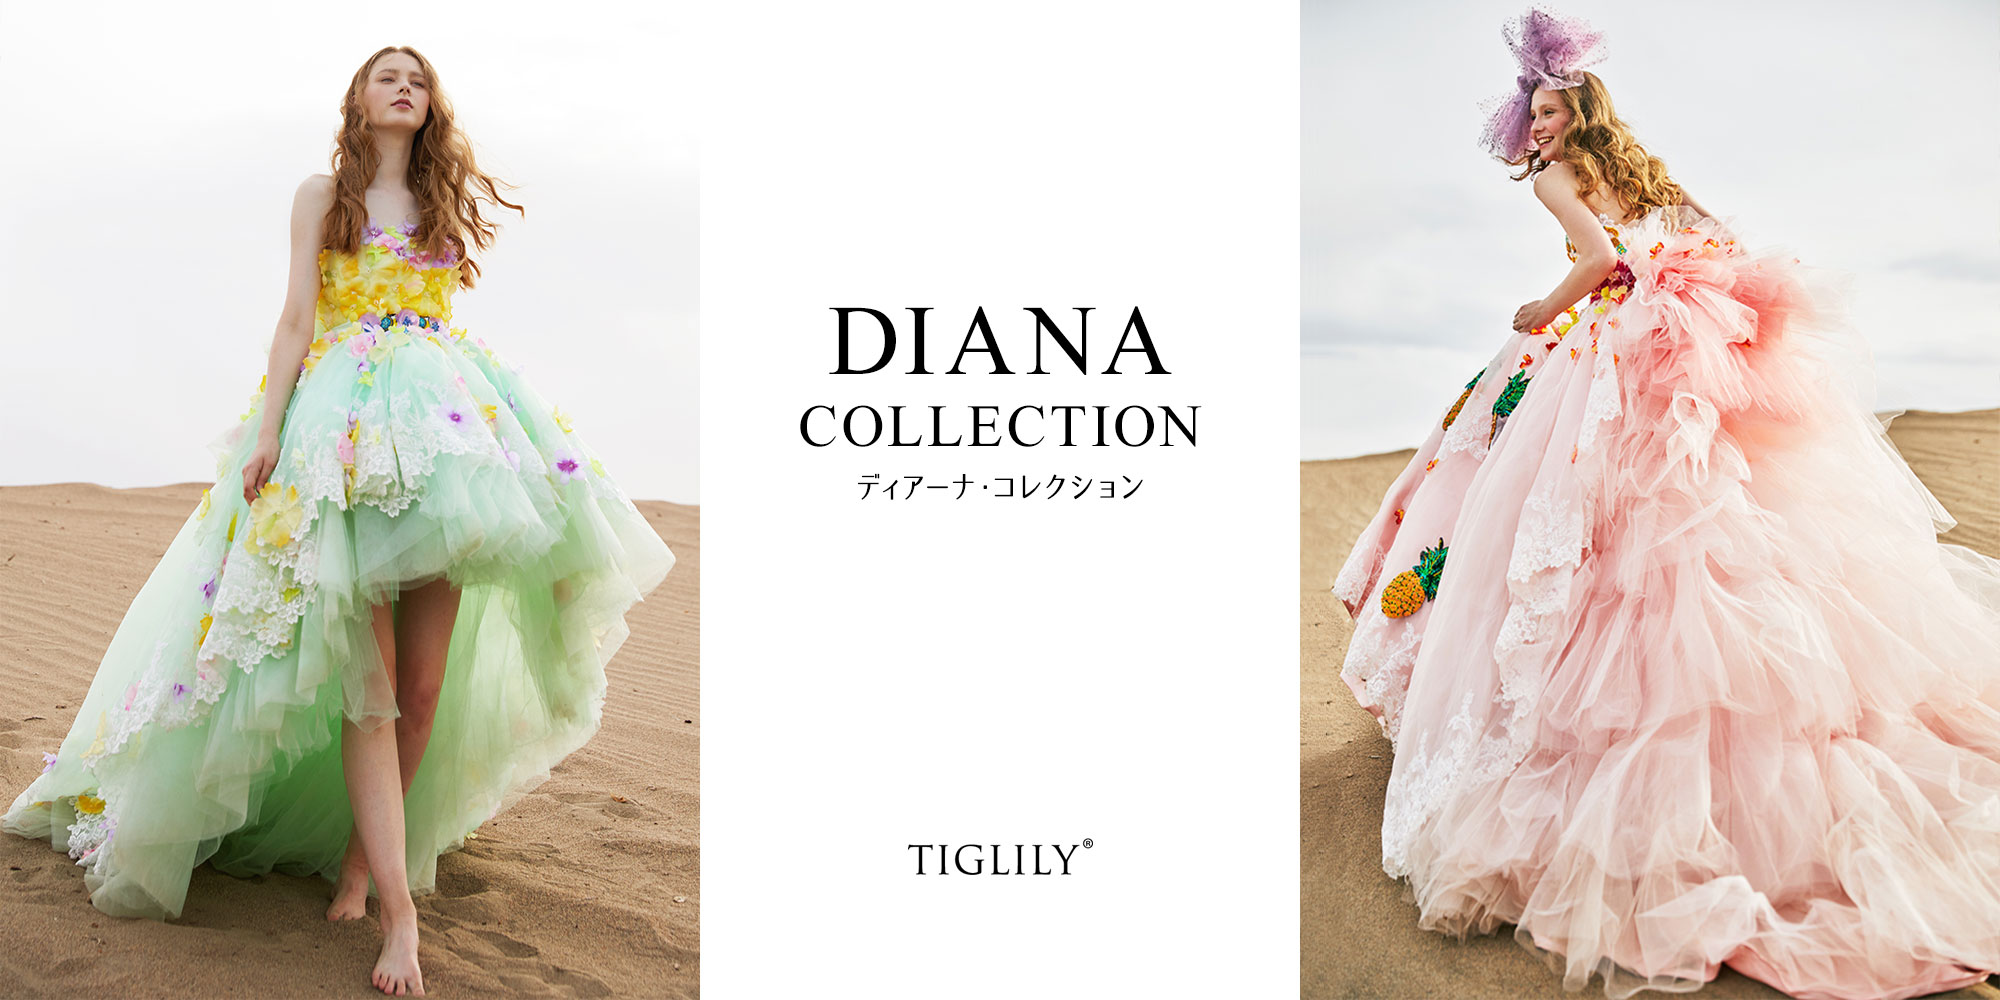 DIANA(ディアーナ) - TIGLILY COLLECTION